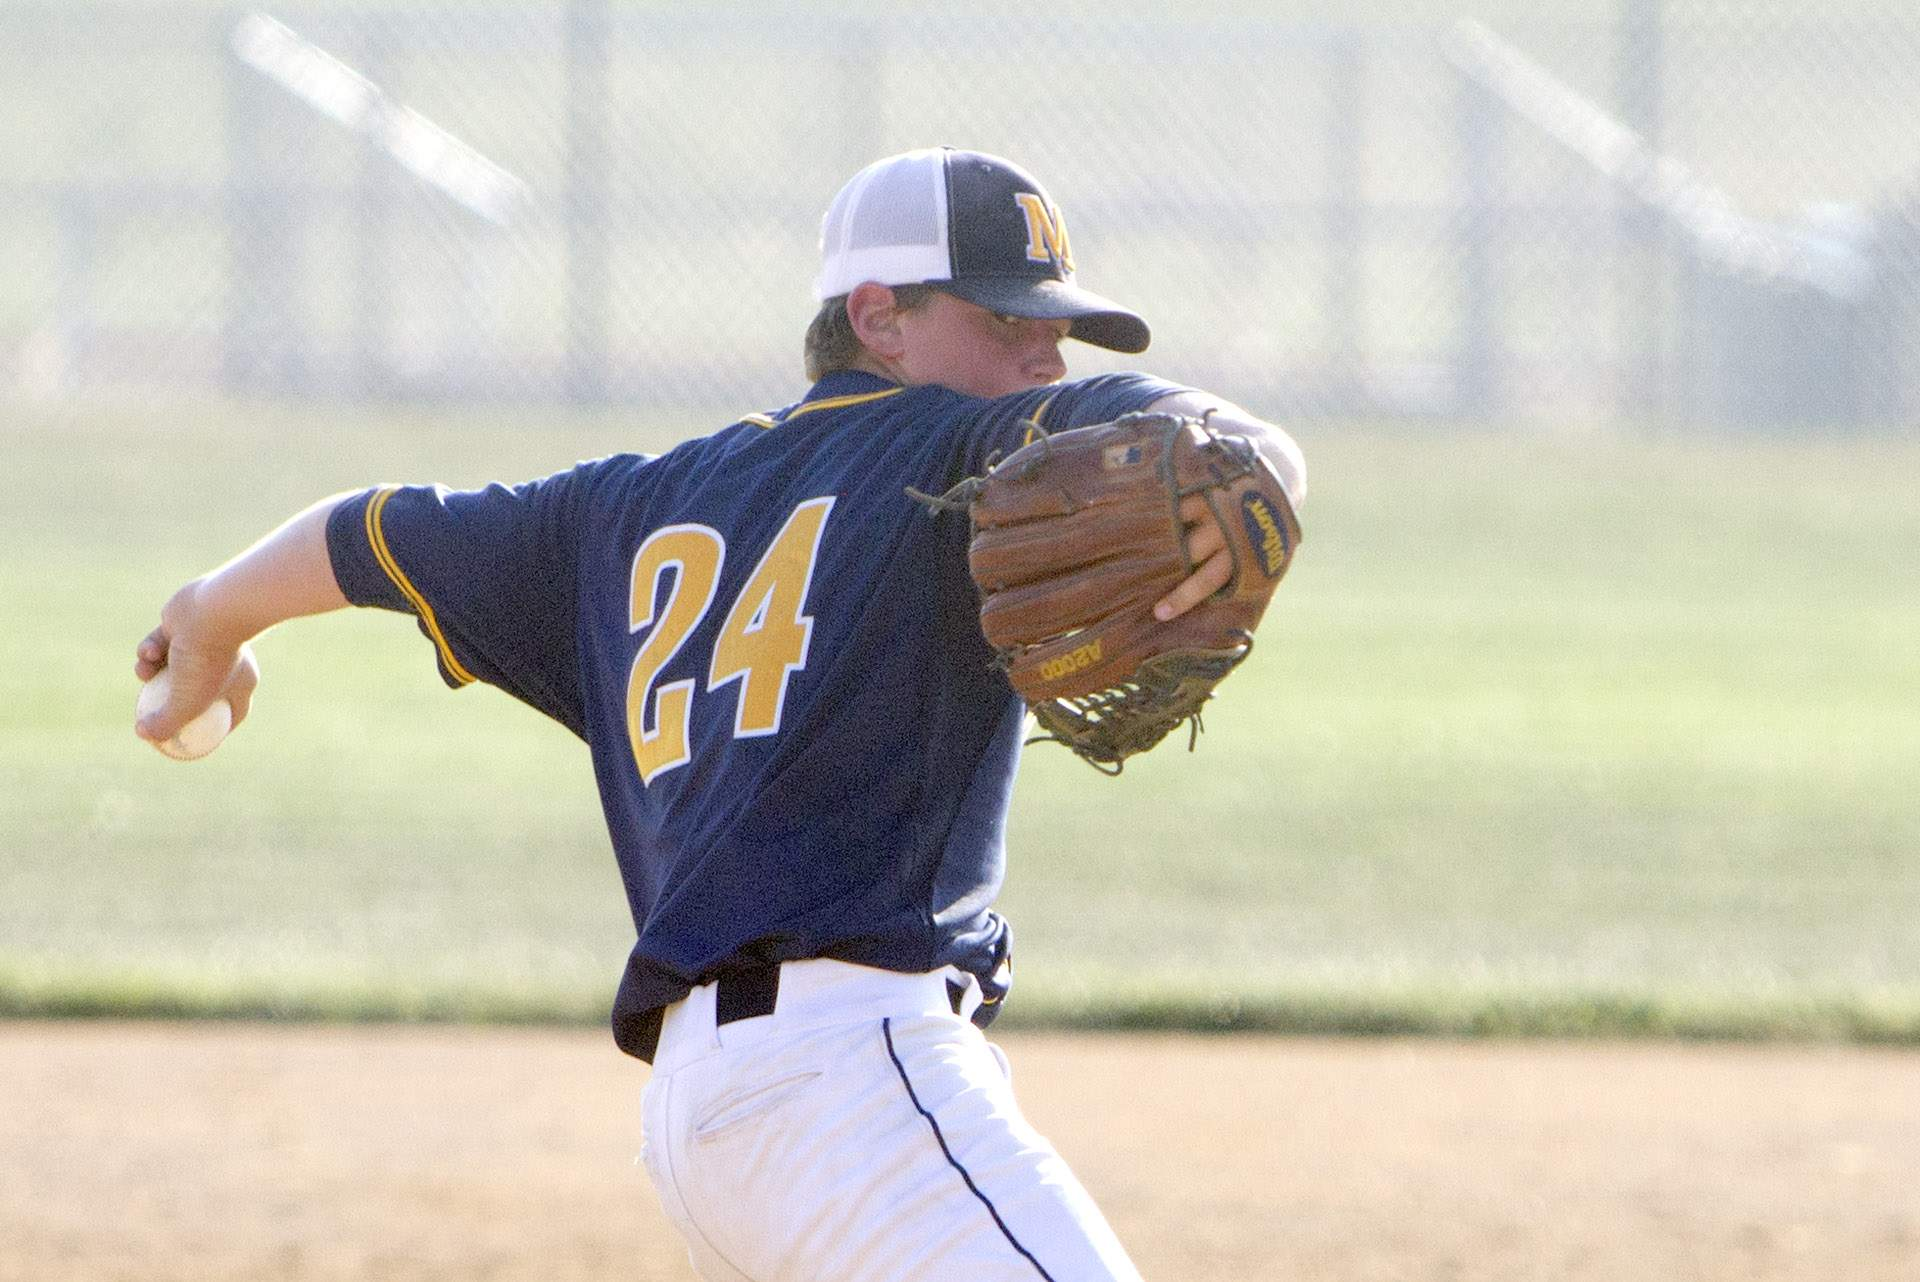 Karsten Stotlar throws a pitch.